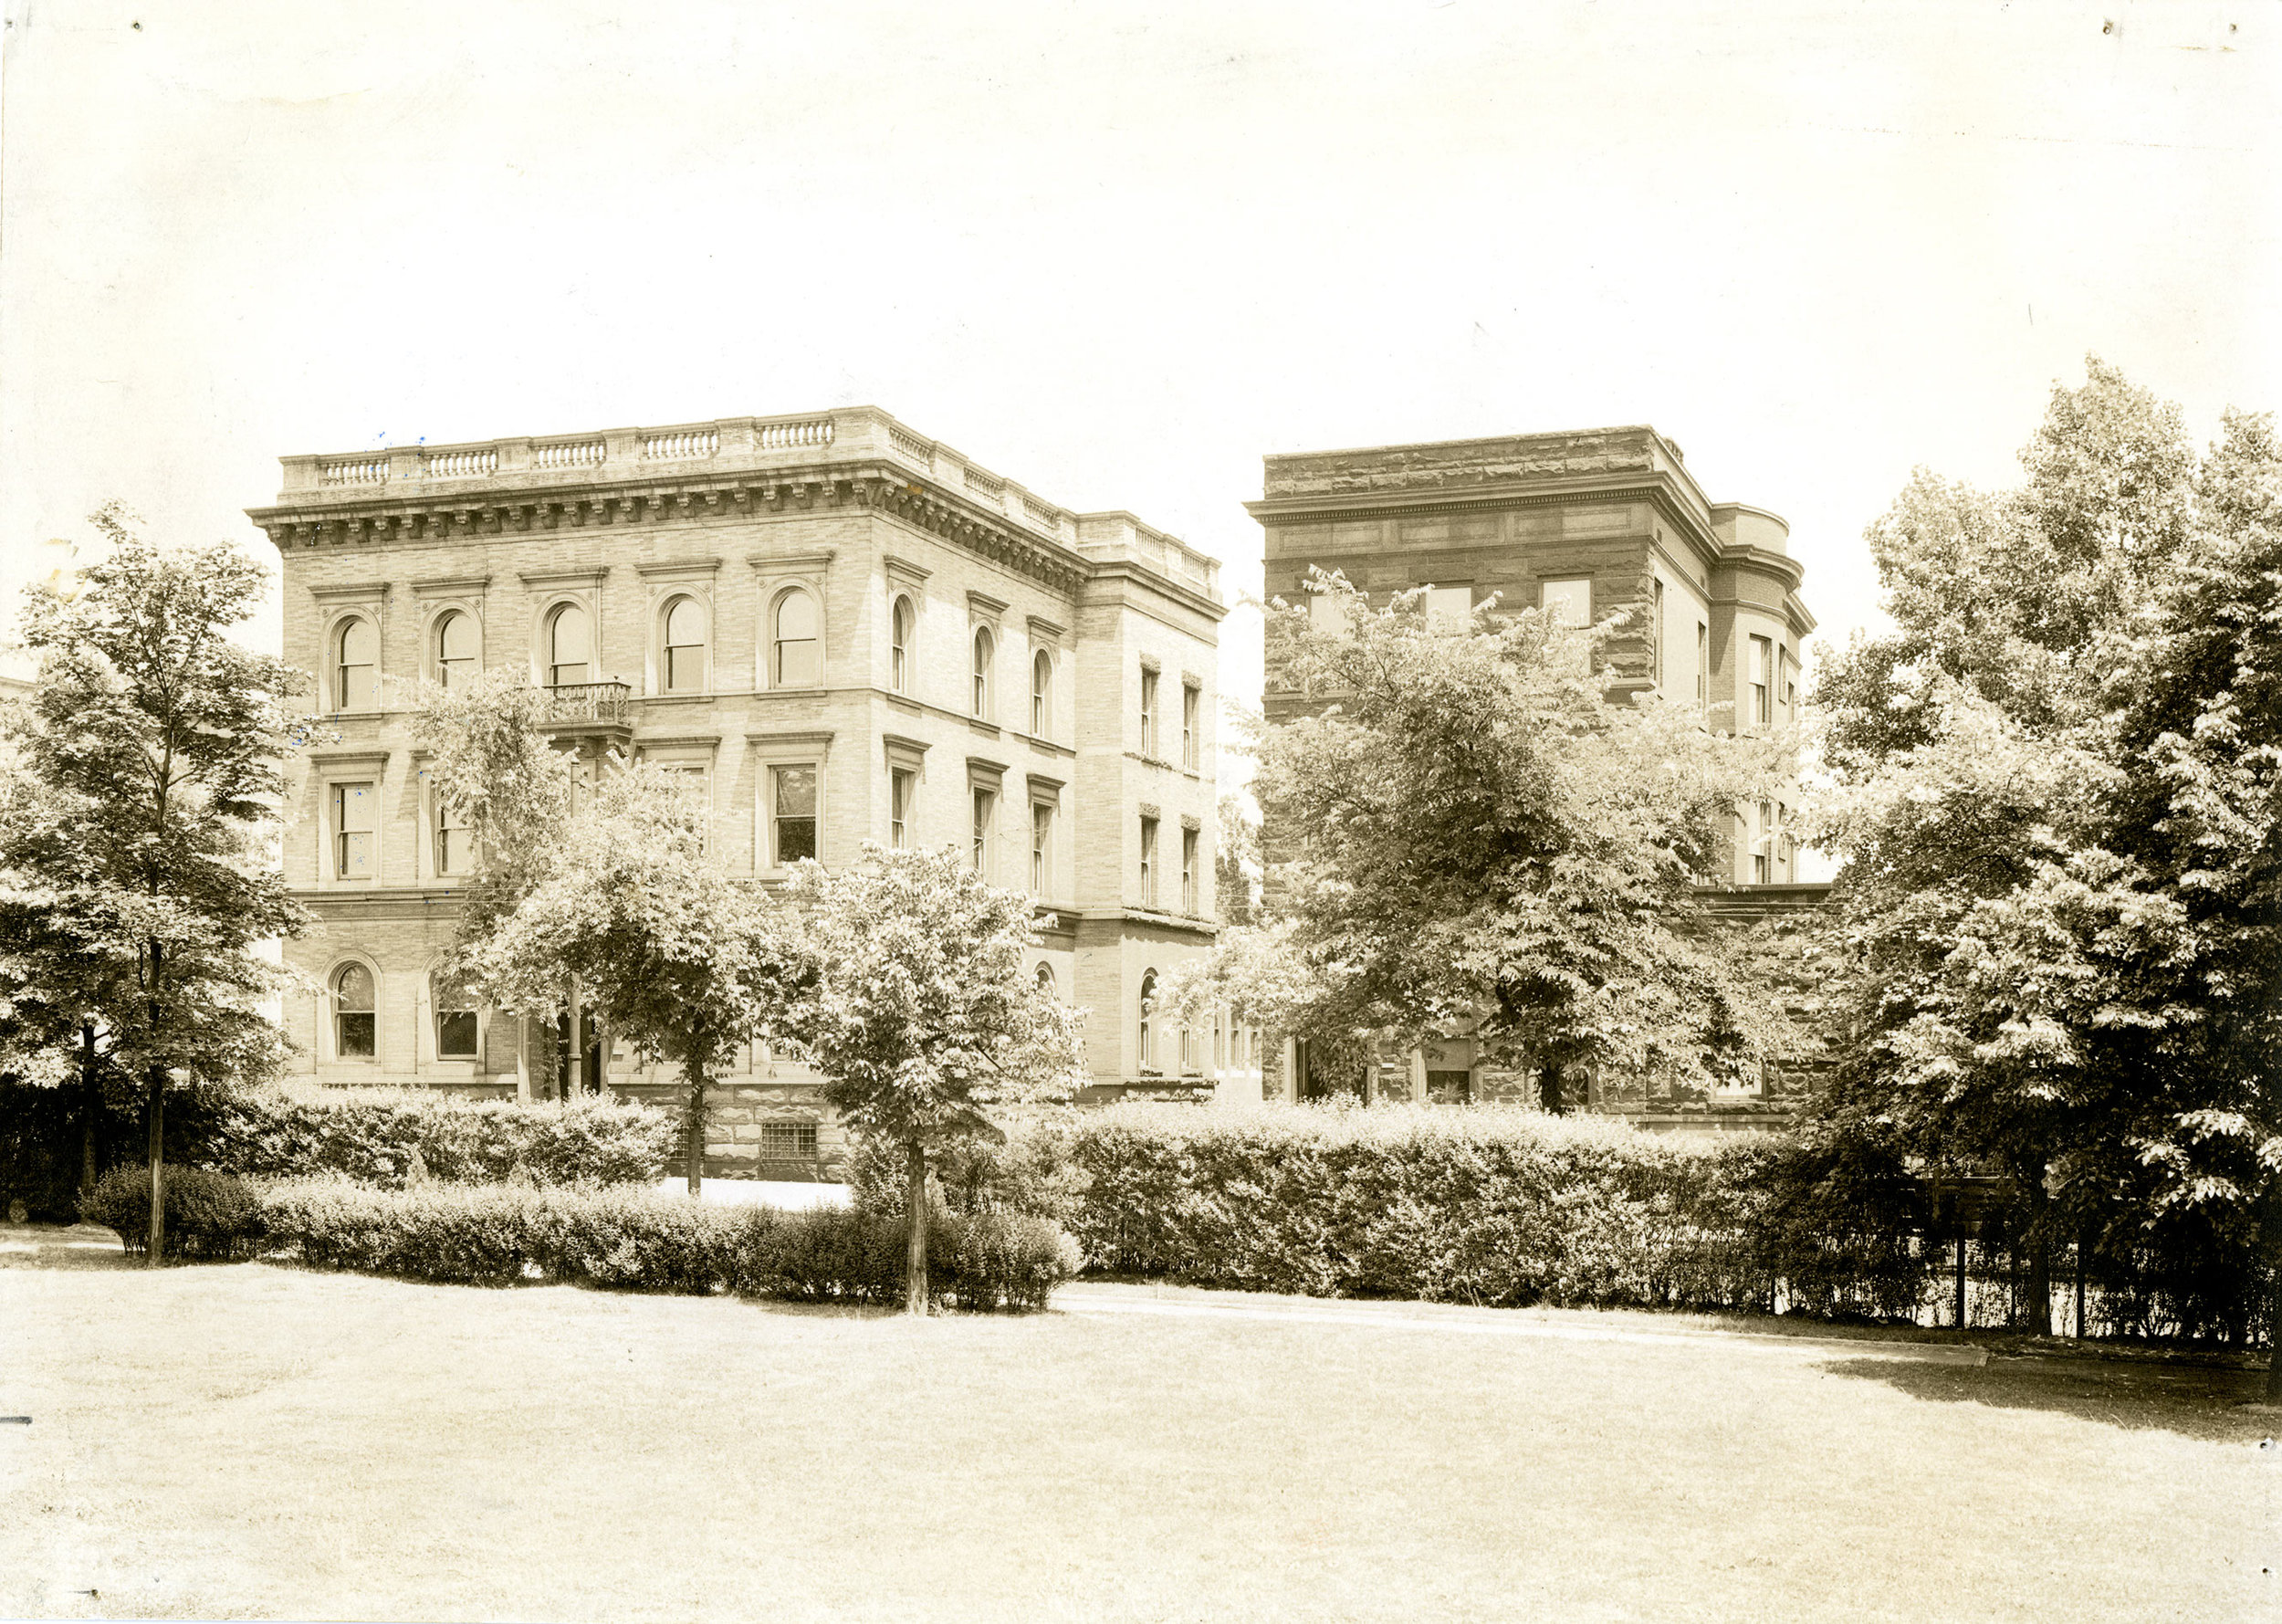 27_Goucher-College-Era_Goucher-College.jpg